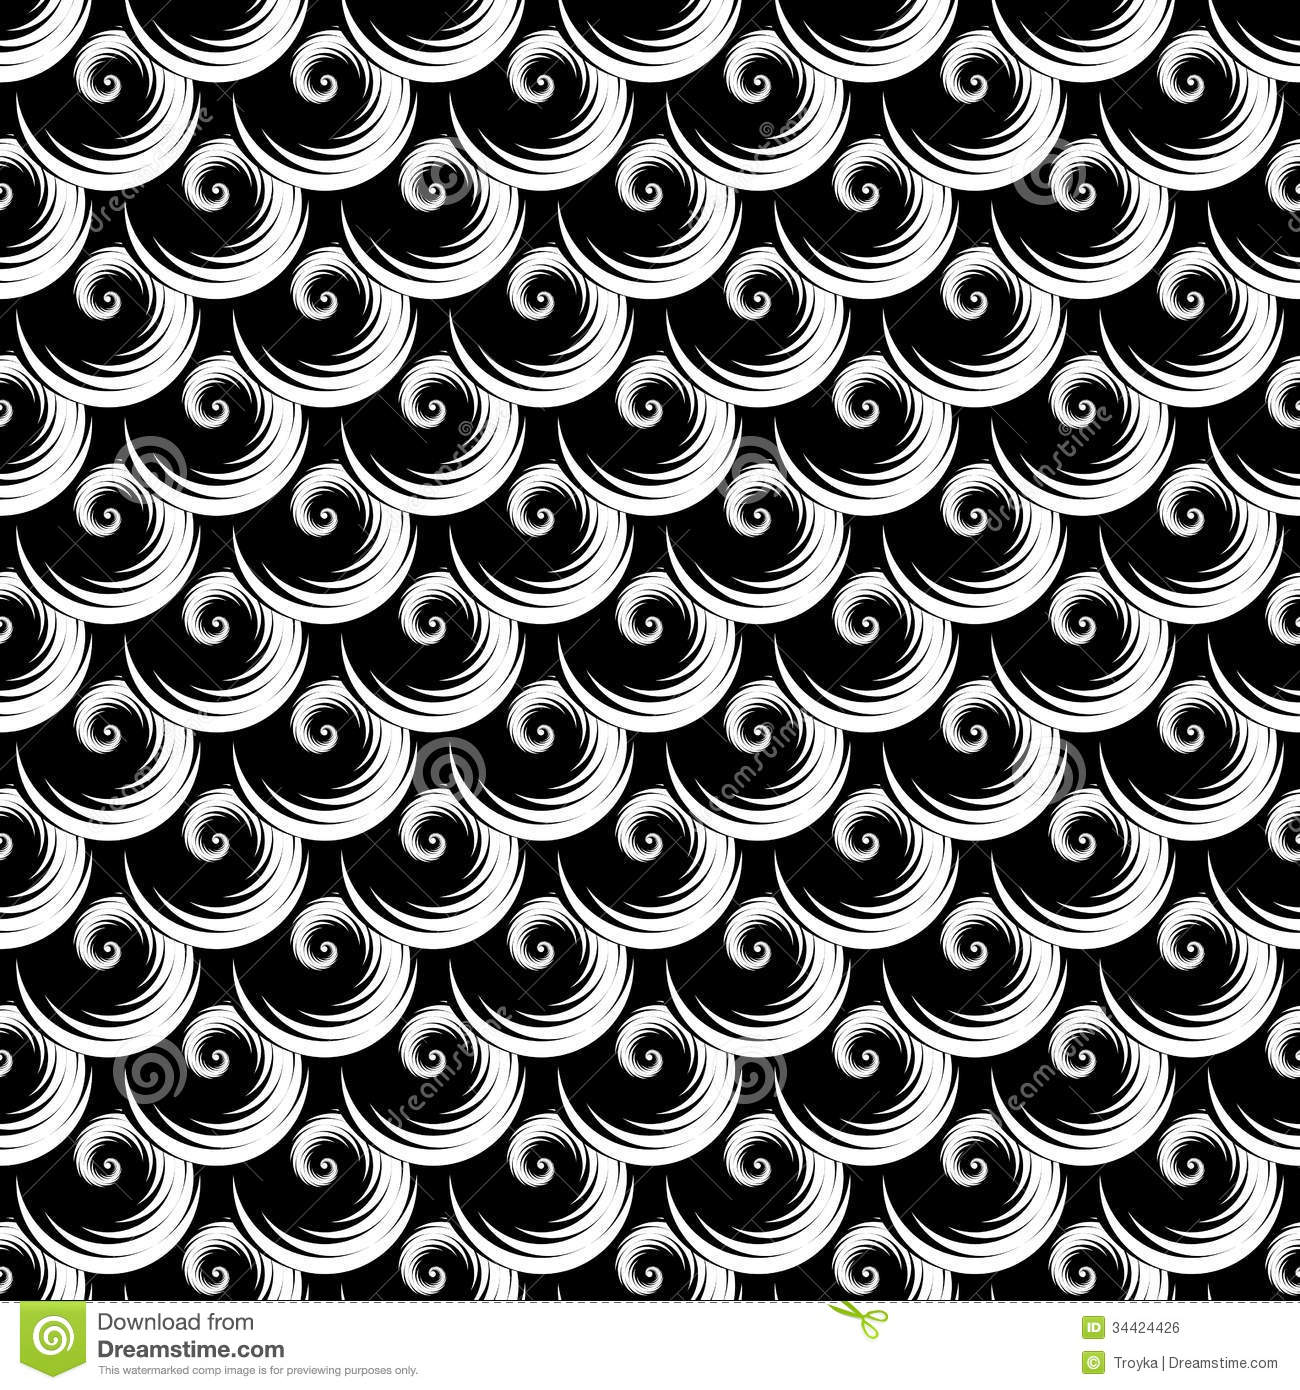 Elements Of Art Pattern : Seamless texture pattern with spiral elements royalty